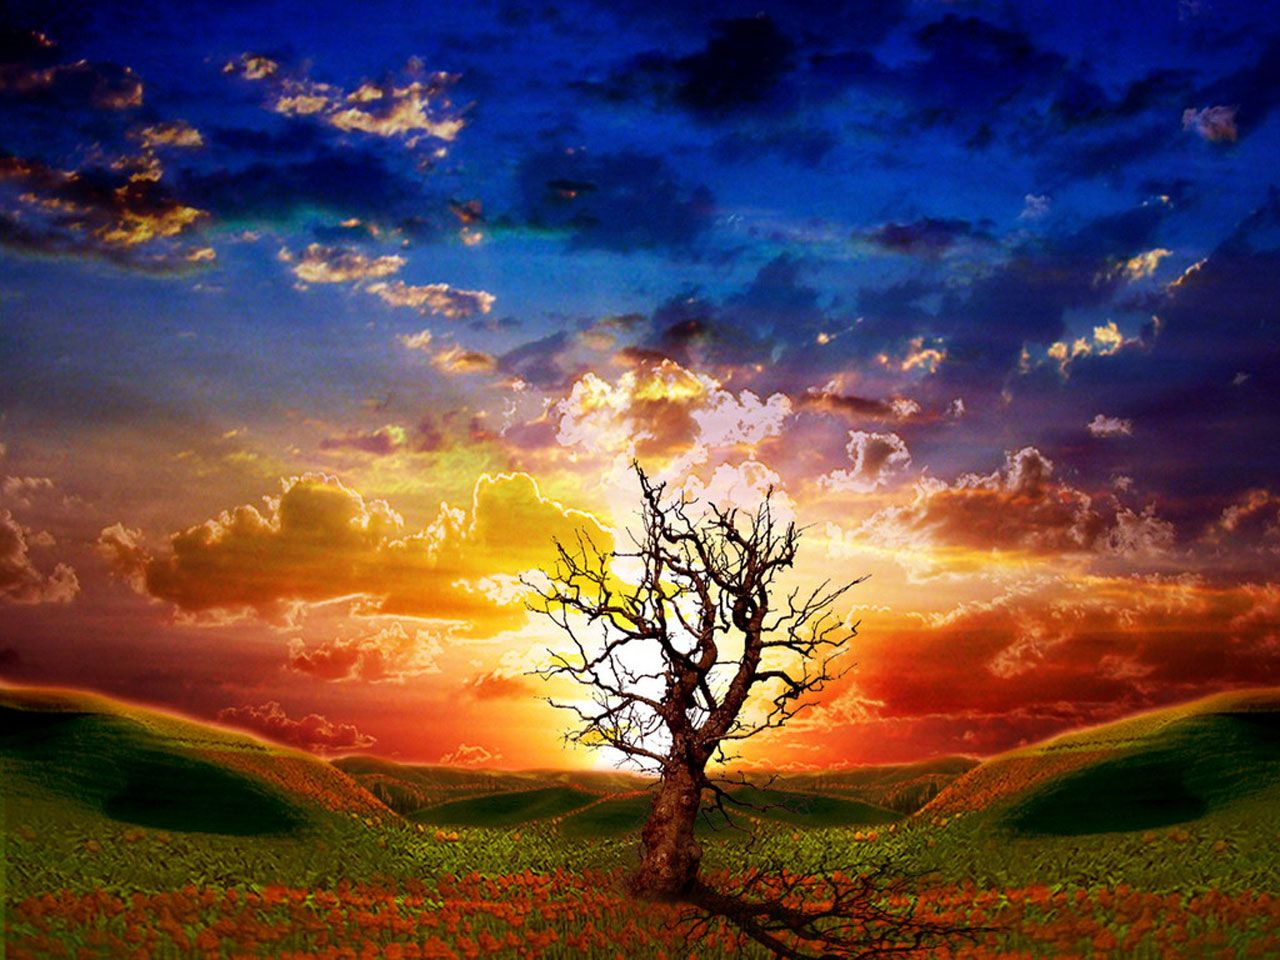 Animated Wallpapers Animated Pictures Free Animation Photo Sunset Landscape Nature Wallpaper Nature